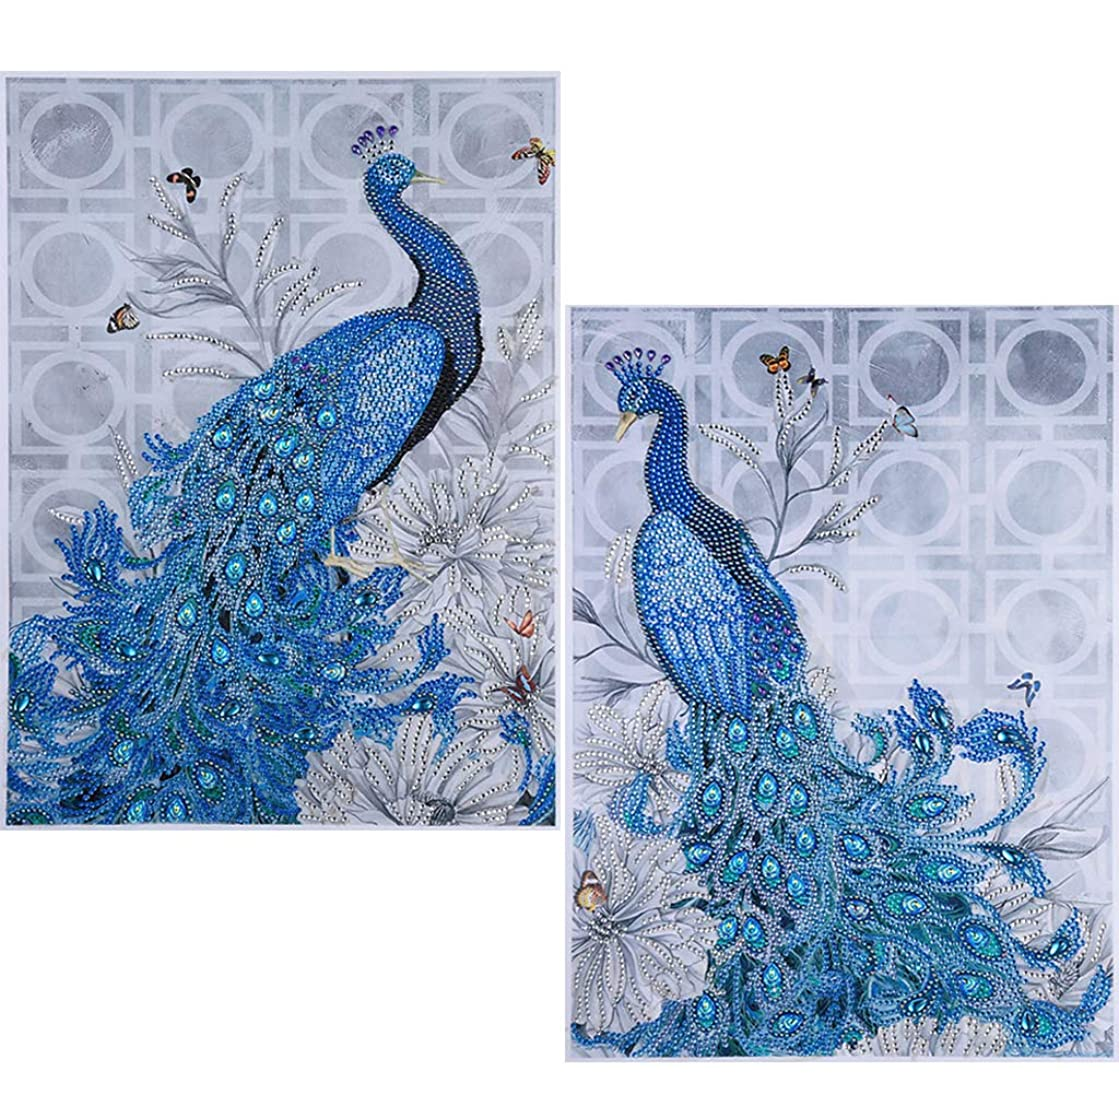 5D Diamond Painting Kits, DIY Diamond Cross Stitch by Numbers, Crystal Rhinestone Embroidery Paintings Pictures Arts Craft for Home Wall Décor by UmbWorld, 14''x 18'' (Peacock Set)